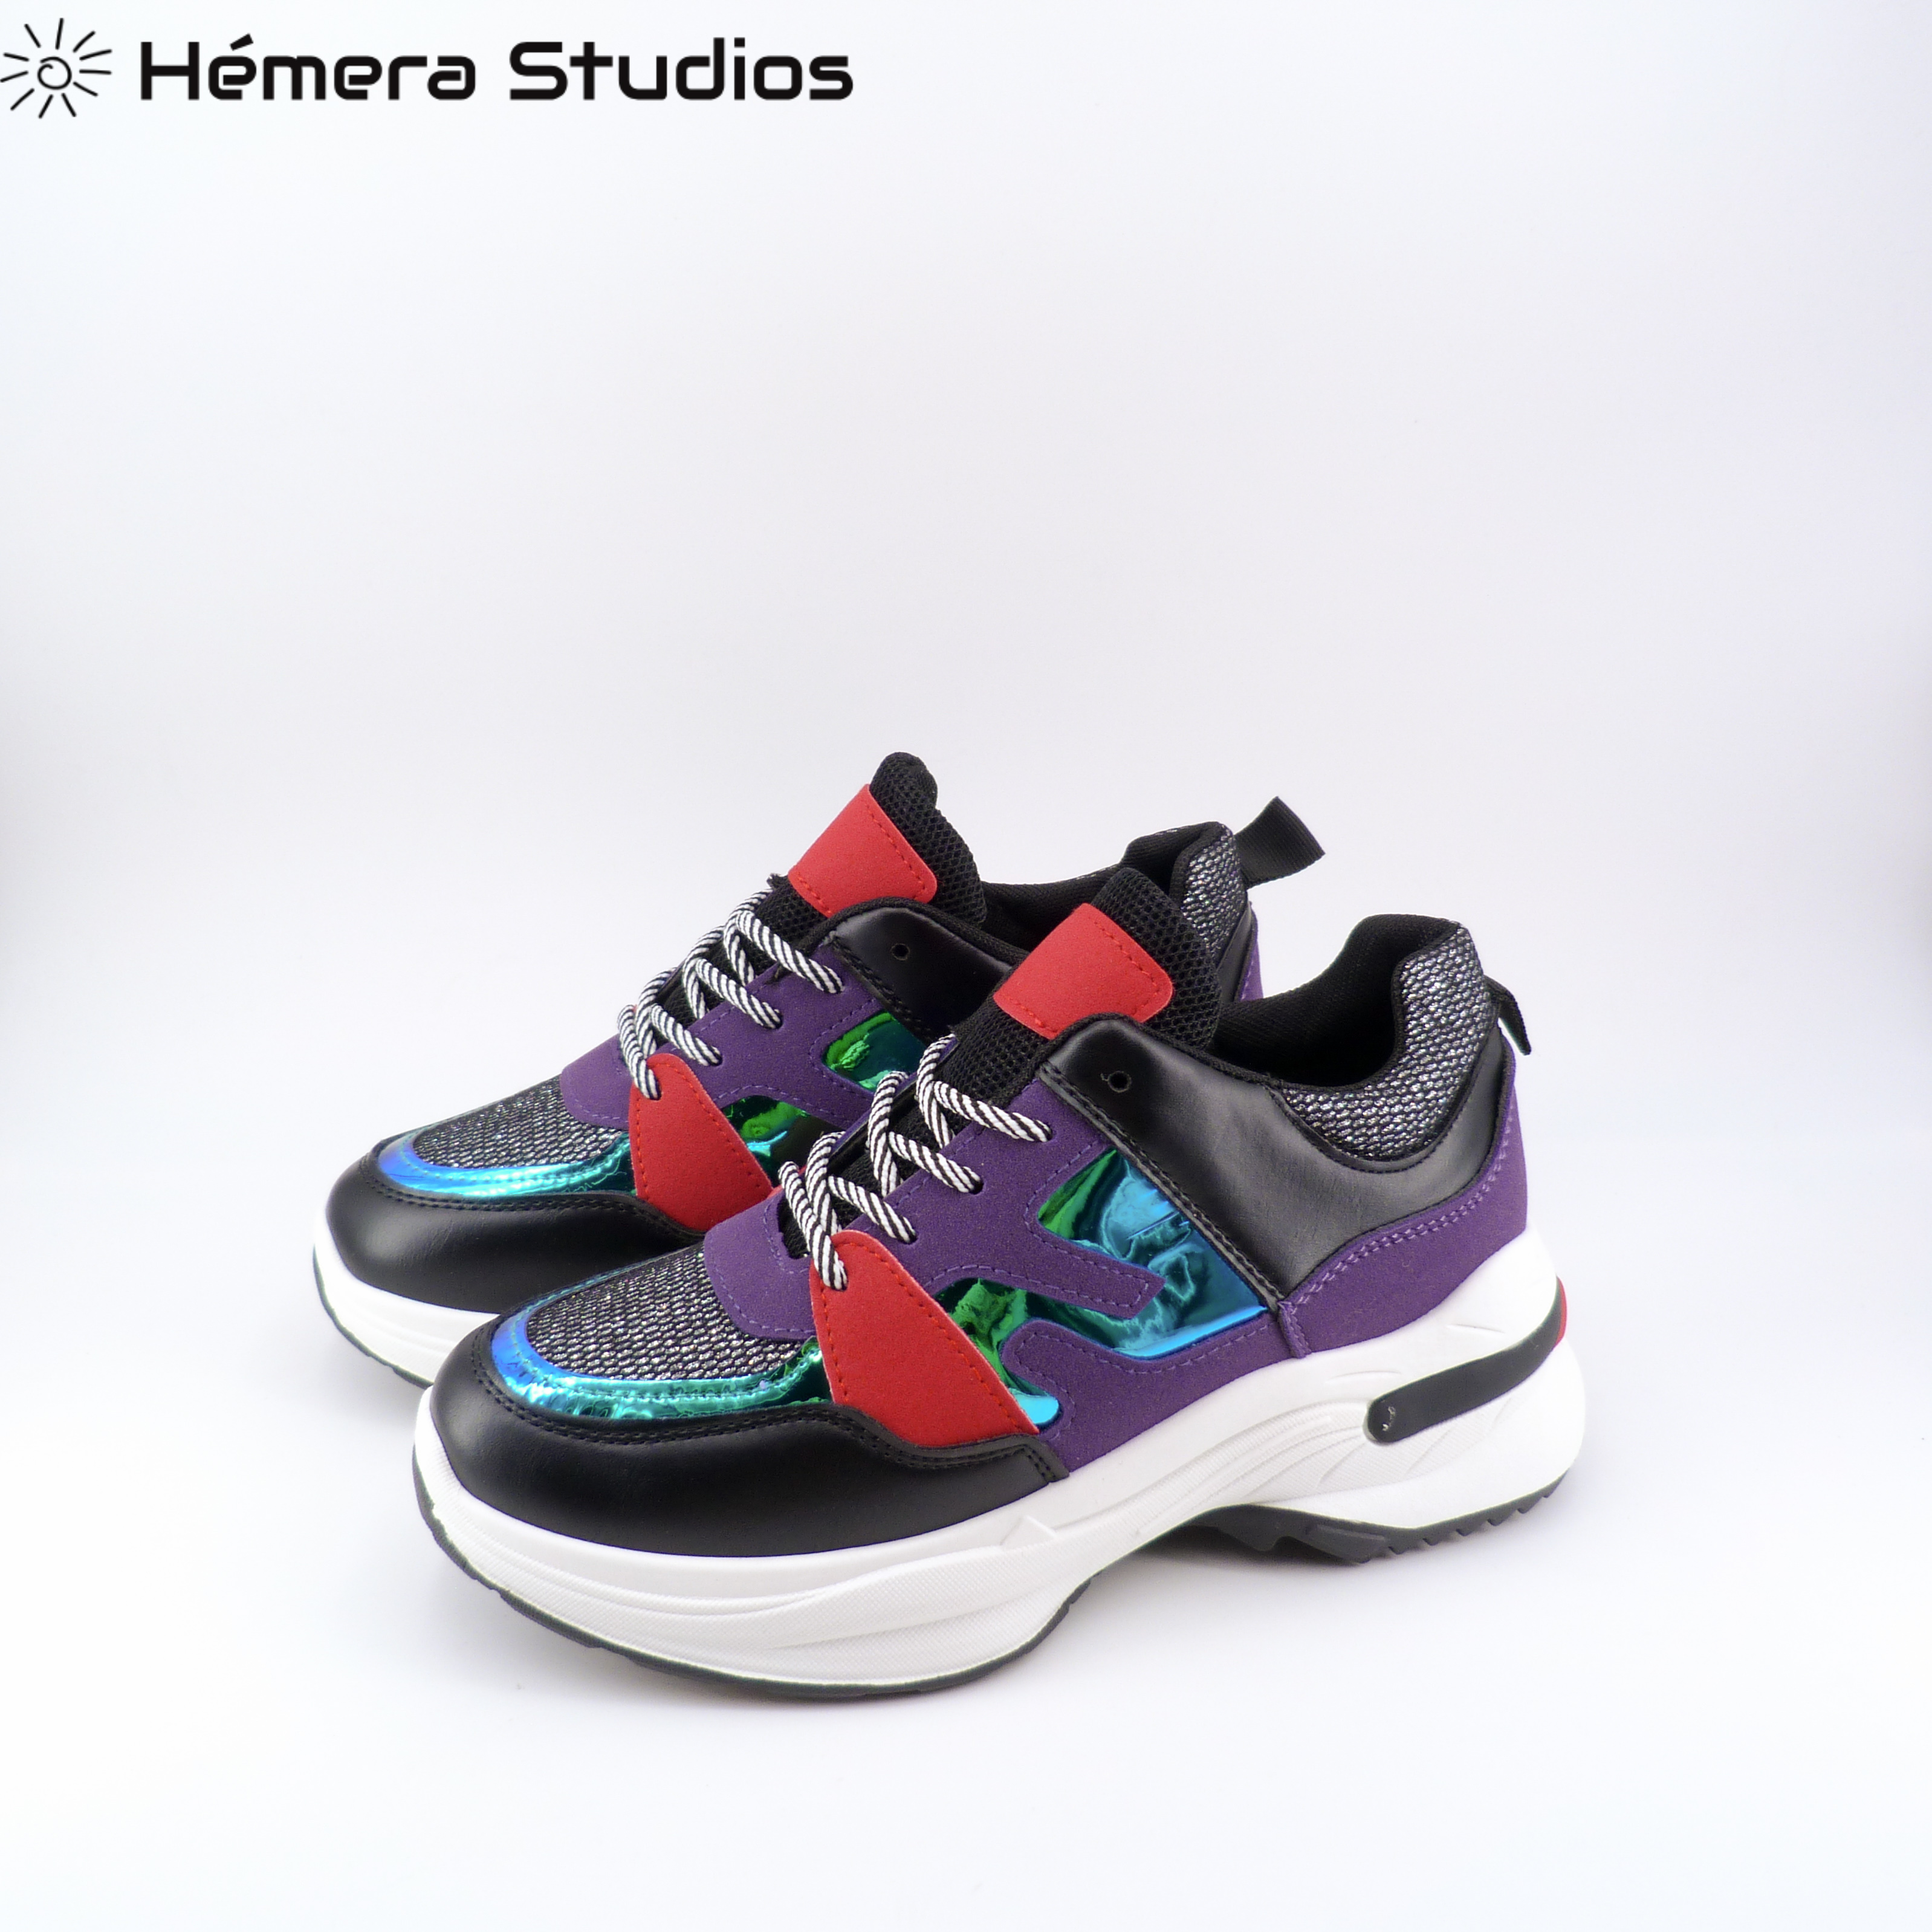 Women's Shoes Sports Casual Woman With Cords Platform Shoes Woman